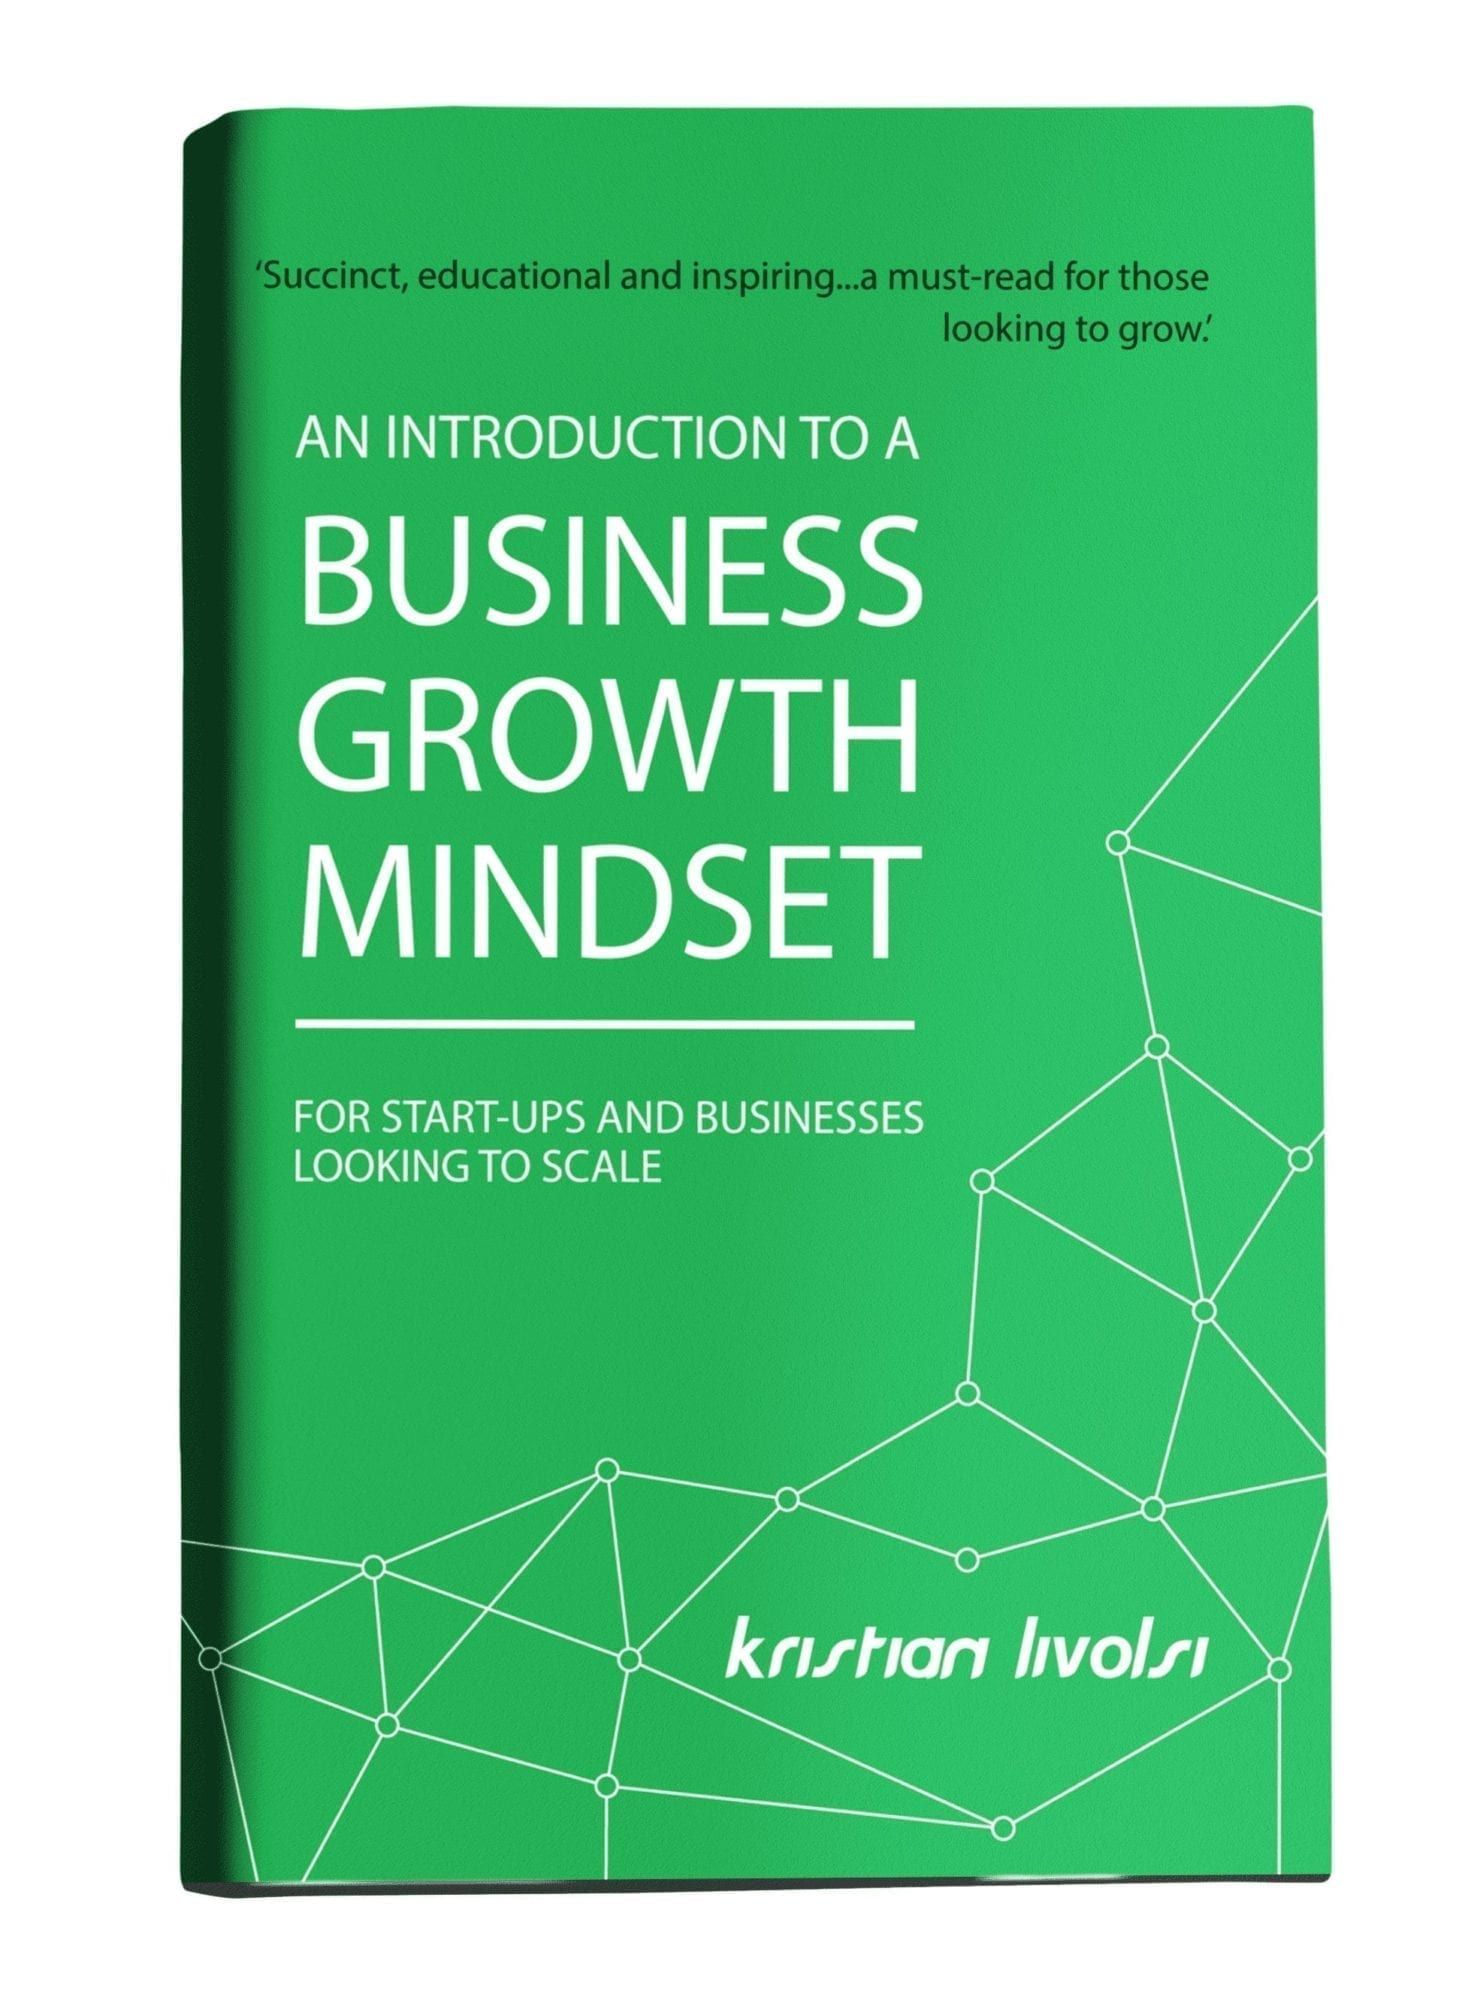 An introduction to business growth mindset by kristian livolsi